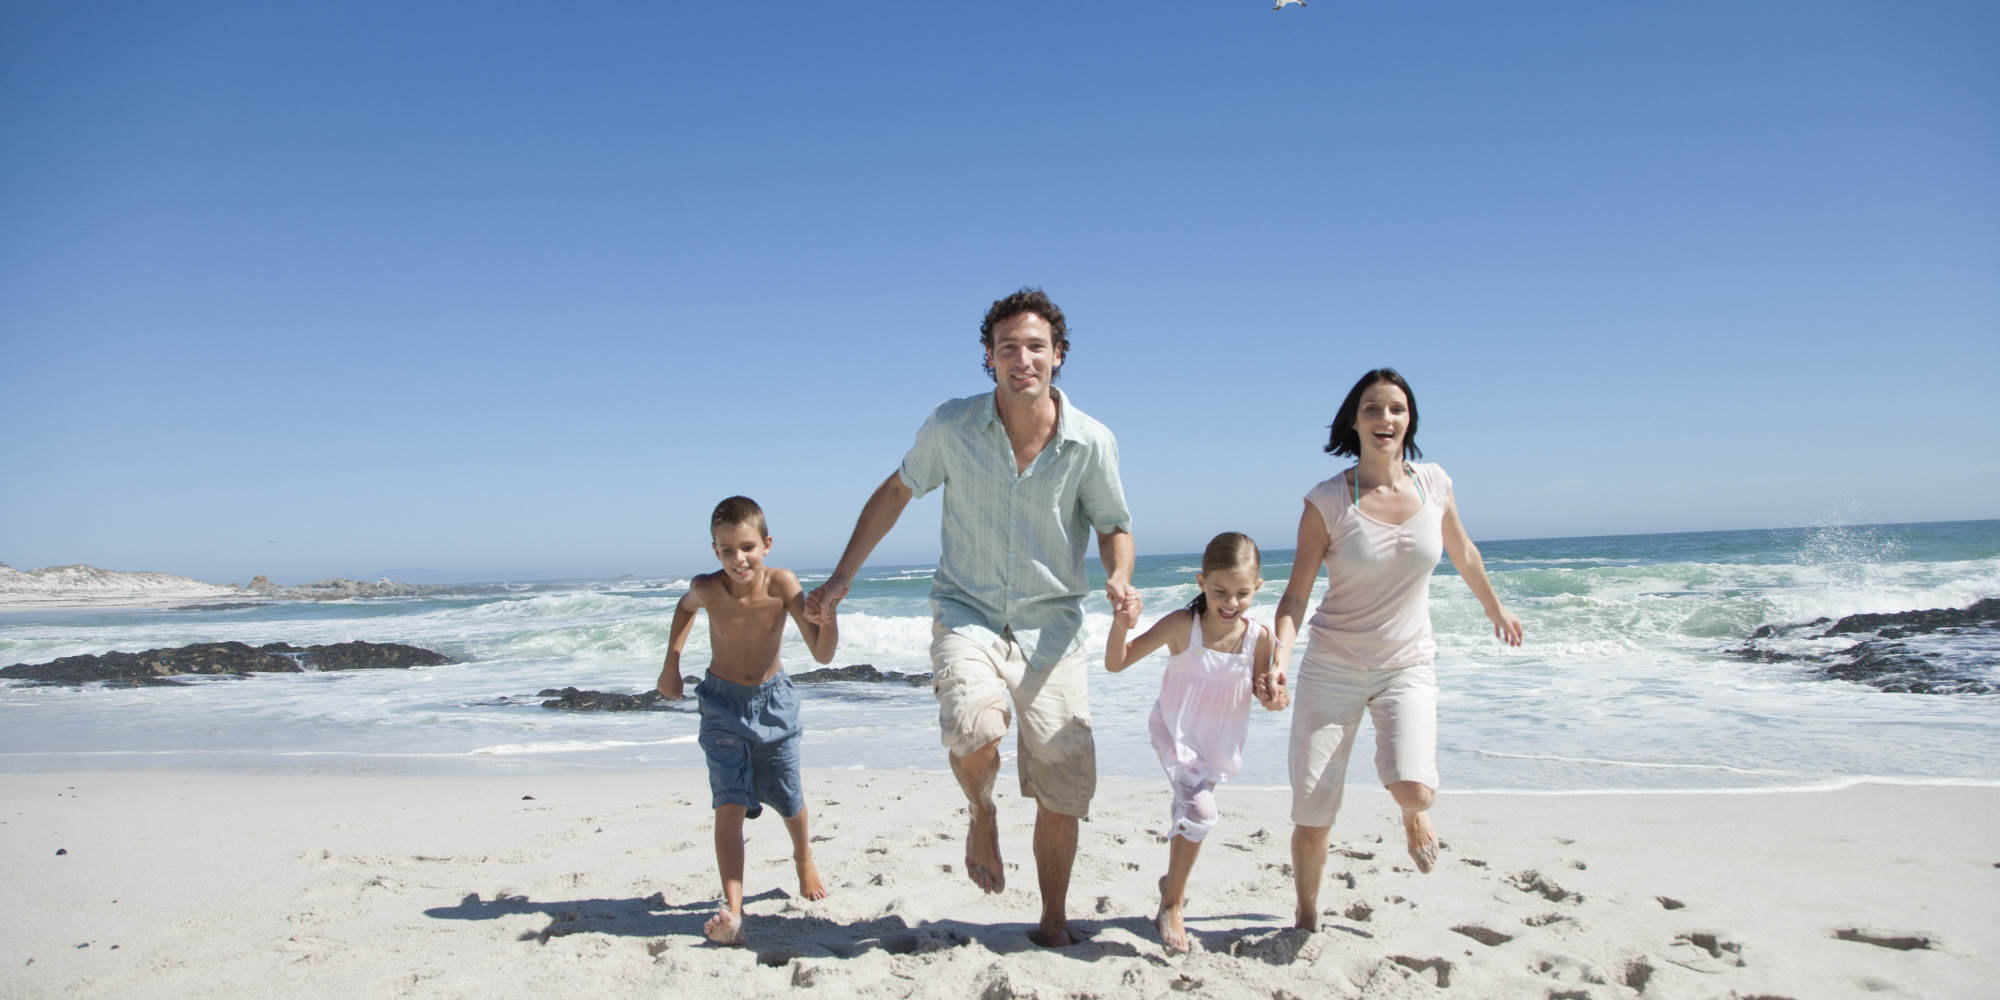 Family vacation will boost you up to struggle with your monotonous life